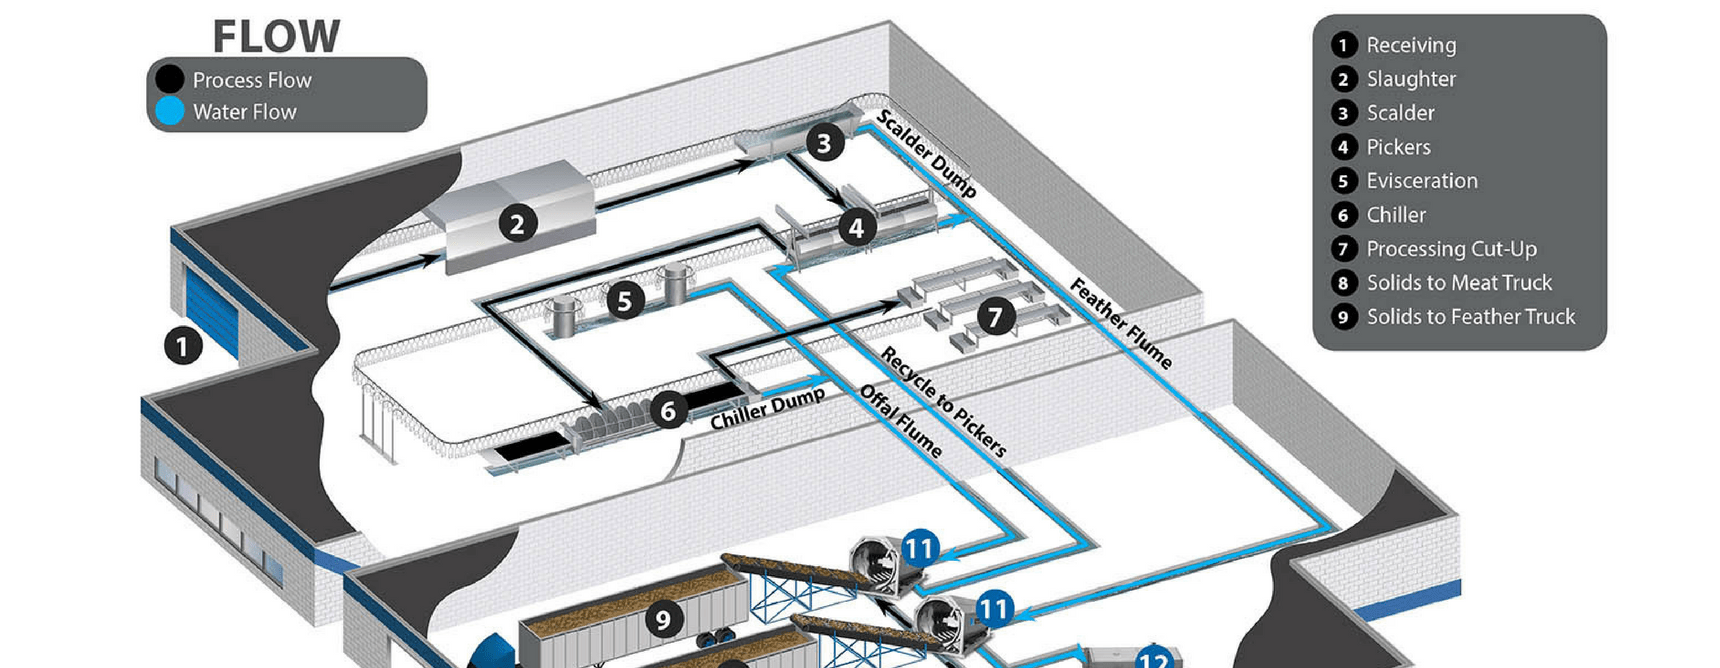 hight resolution of poultry processing plant layout wastewater flow infographic